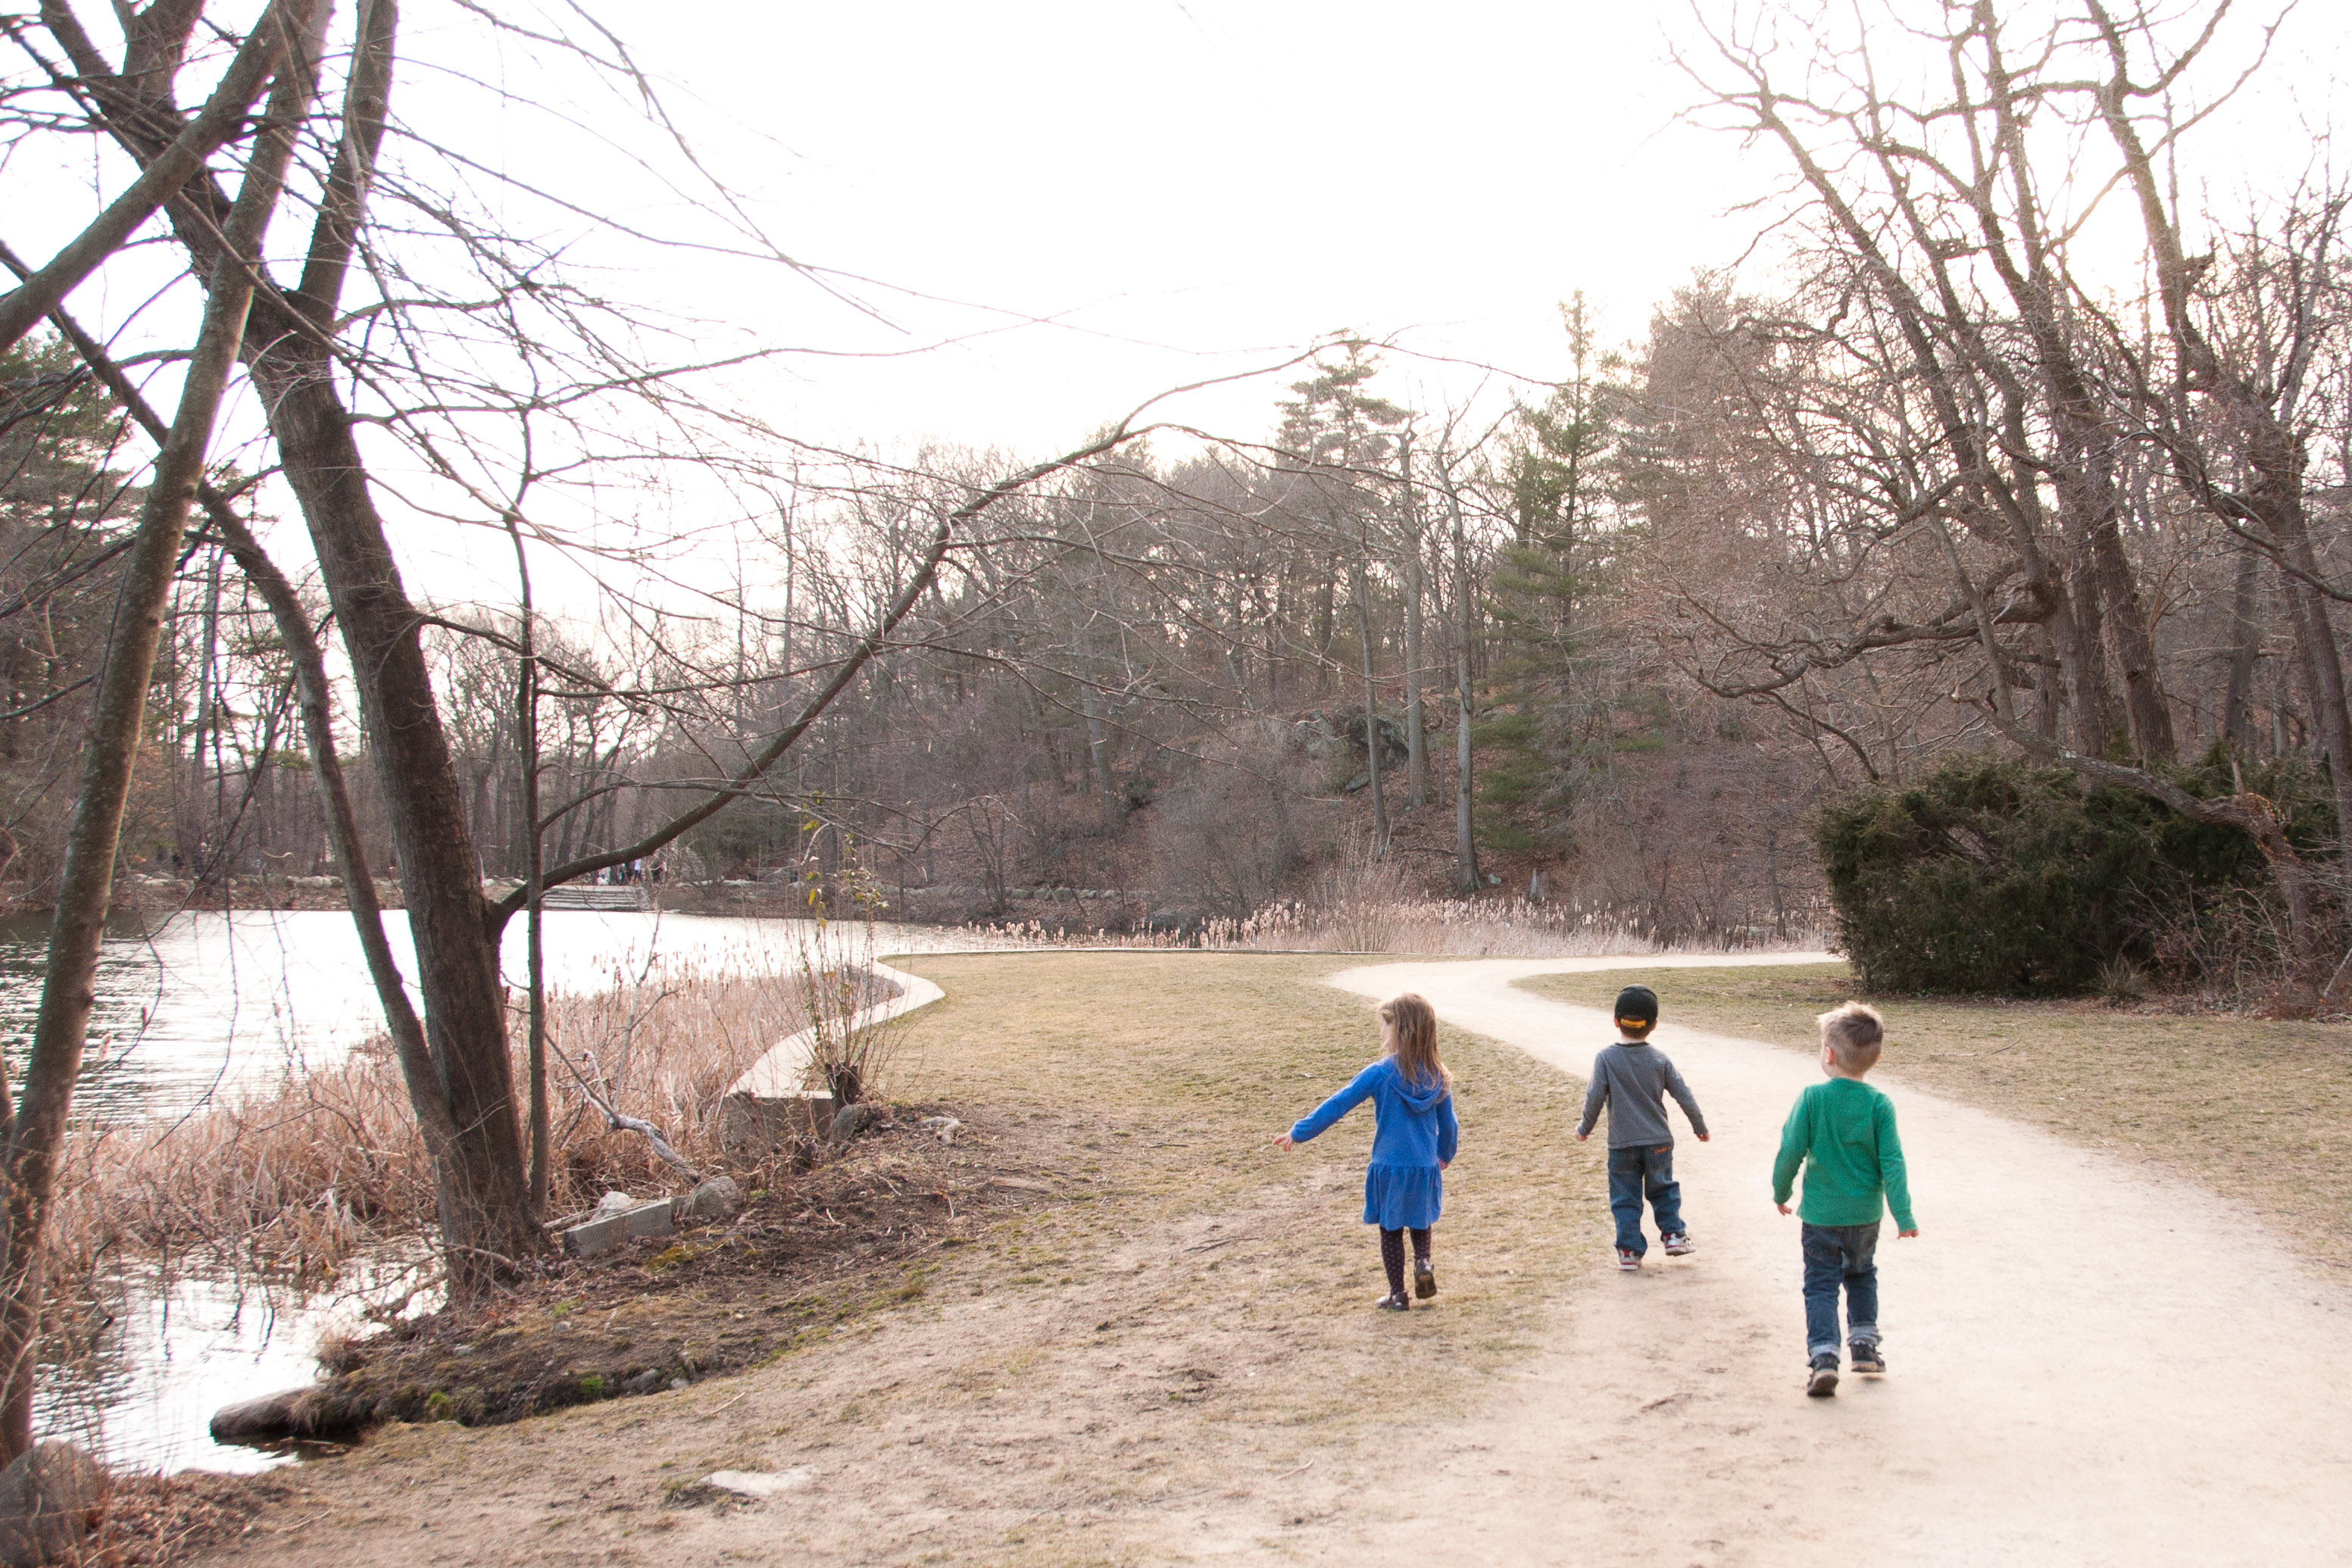 Josie, Luke and Nolan running down the path